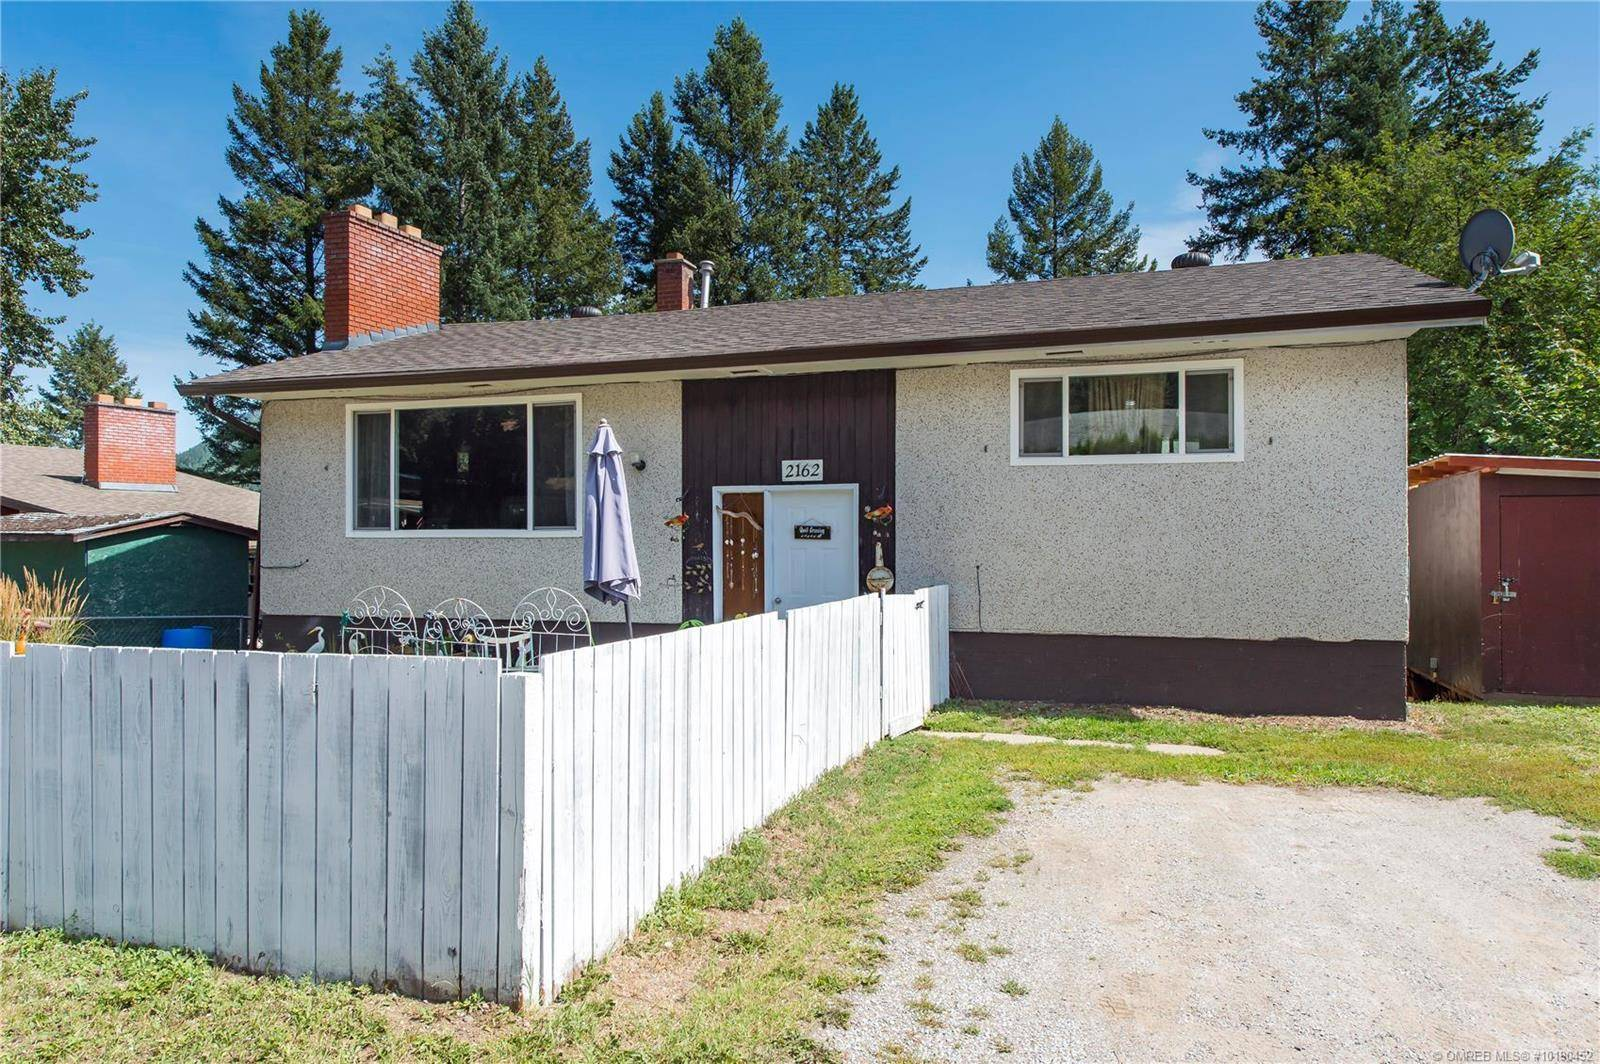 House for sale at 2162 Catt Ave Lumby British Columbia - MLS: 10190452